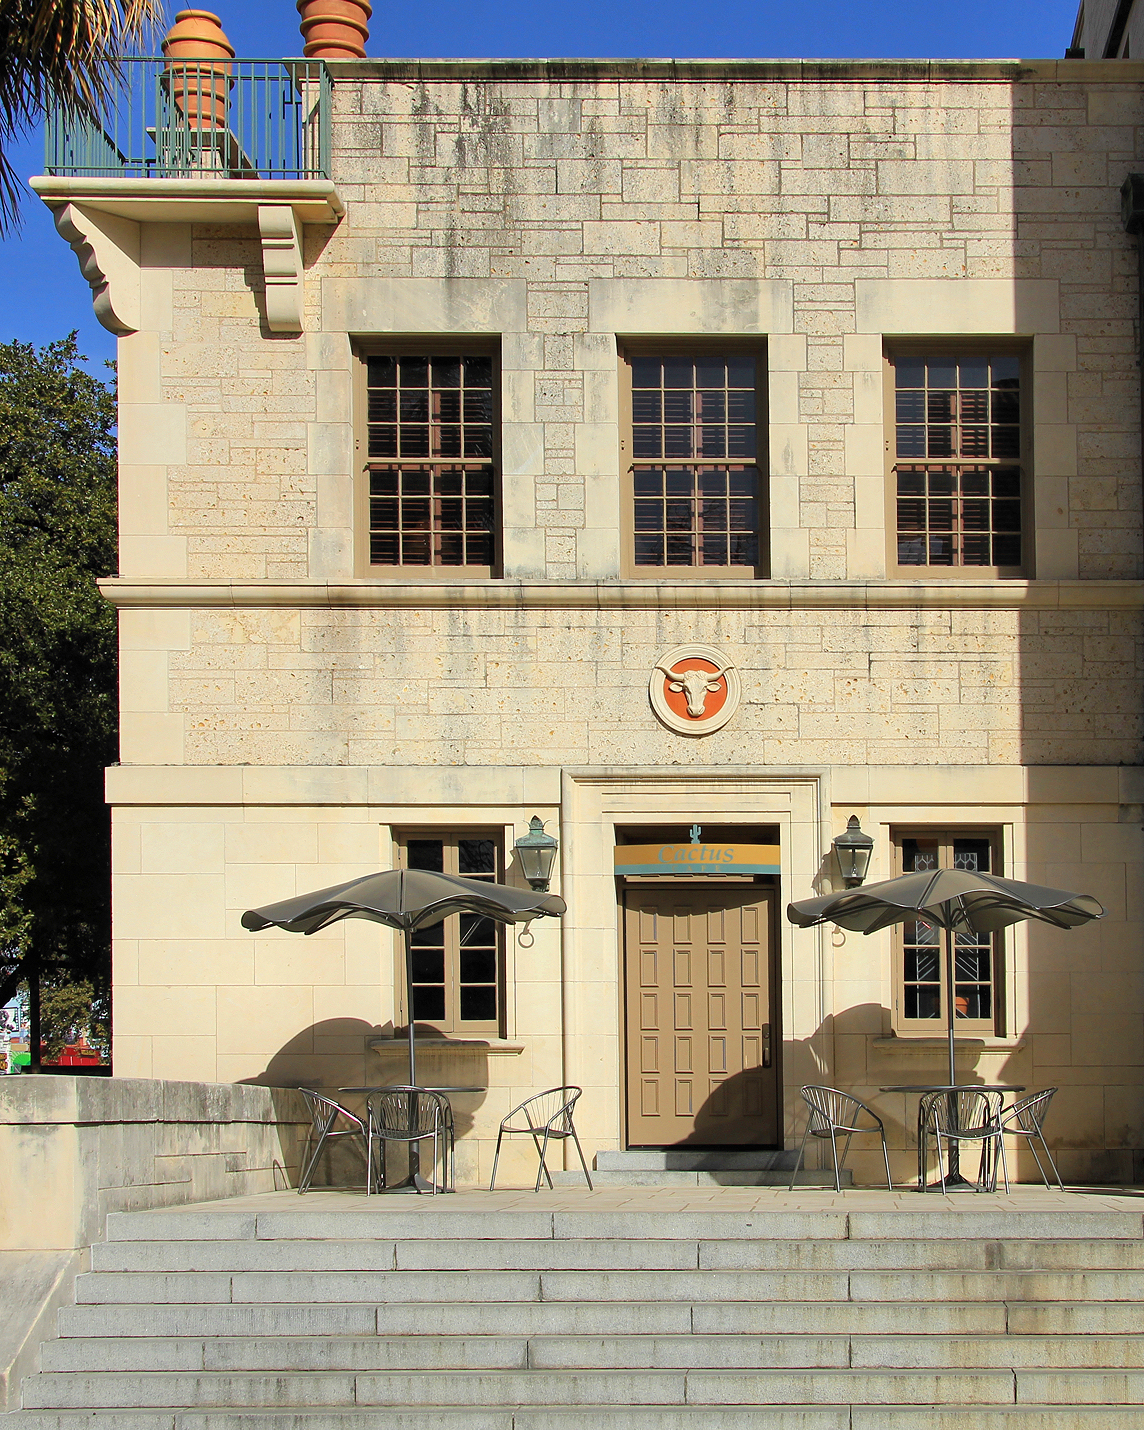 The exterior of the Cactus Cafe, located in the corner of the University of Texas's Union Building